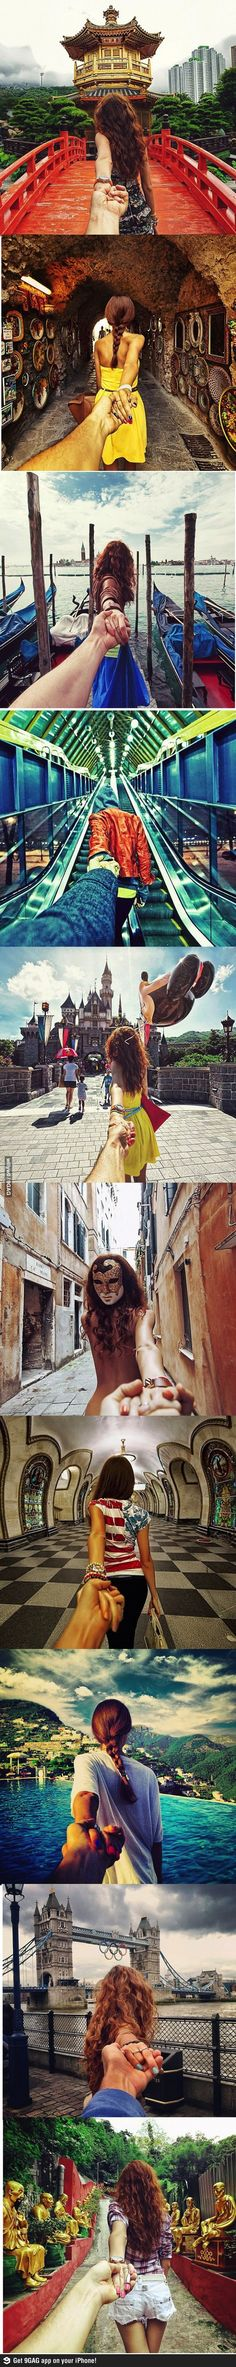 Photographer's girlfriend leads him around the world. Beautifully creative.